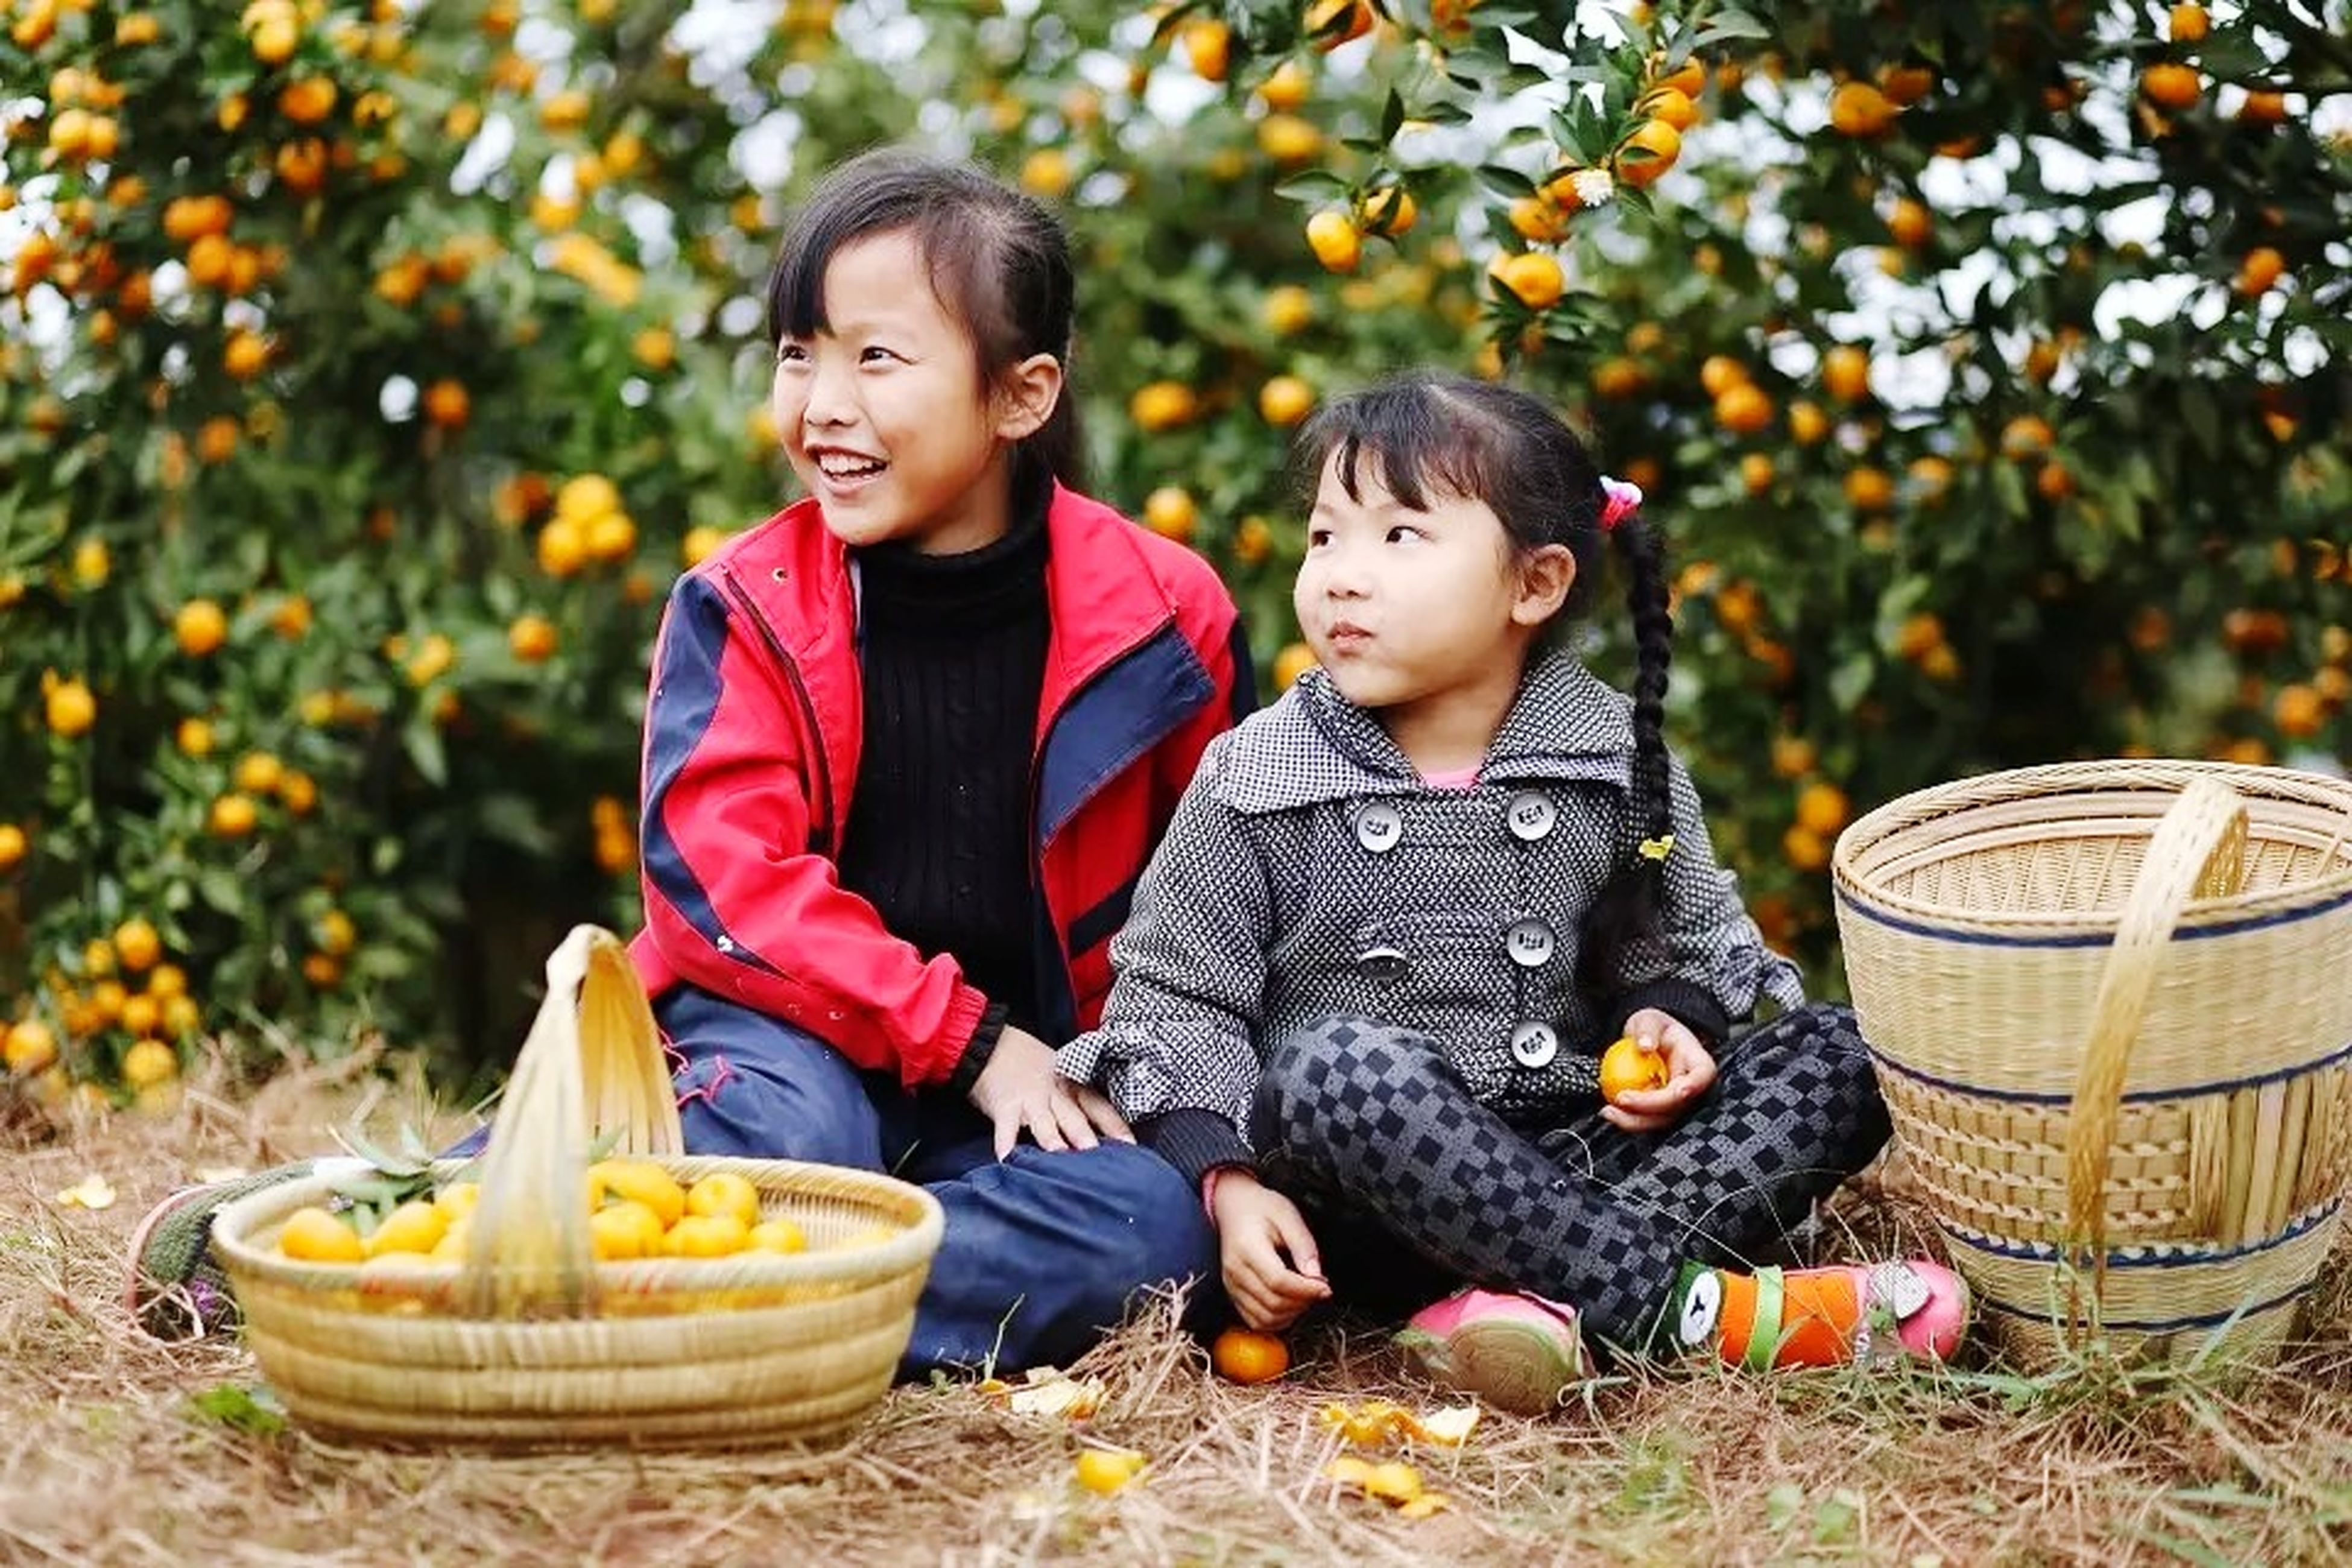 boys, childhood, togetherness, son, family with one child, smiling, outdoors, child, basket, day, real people, males, full length, food, tree, pumpkin, people, halloween, adult